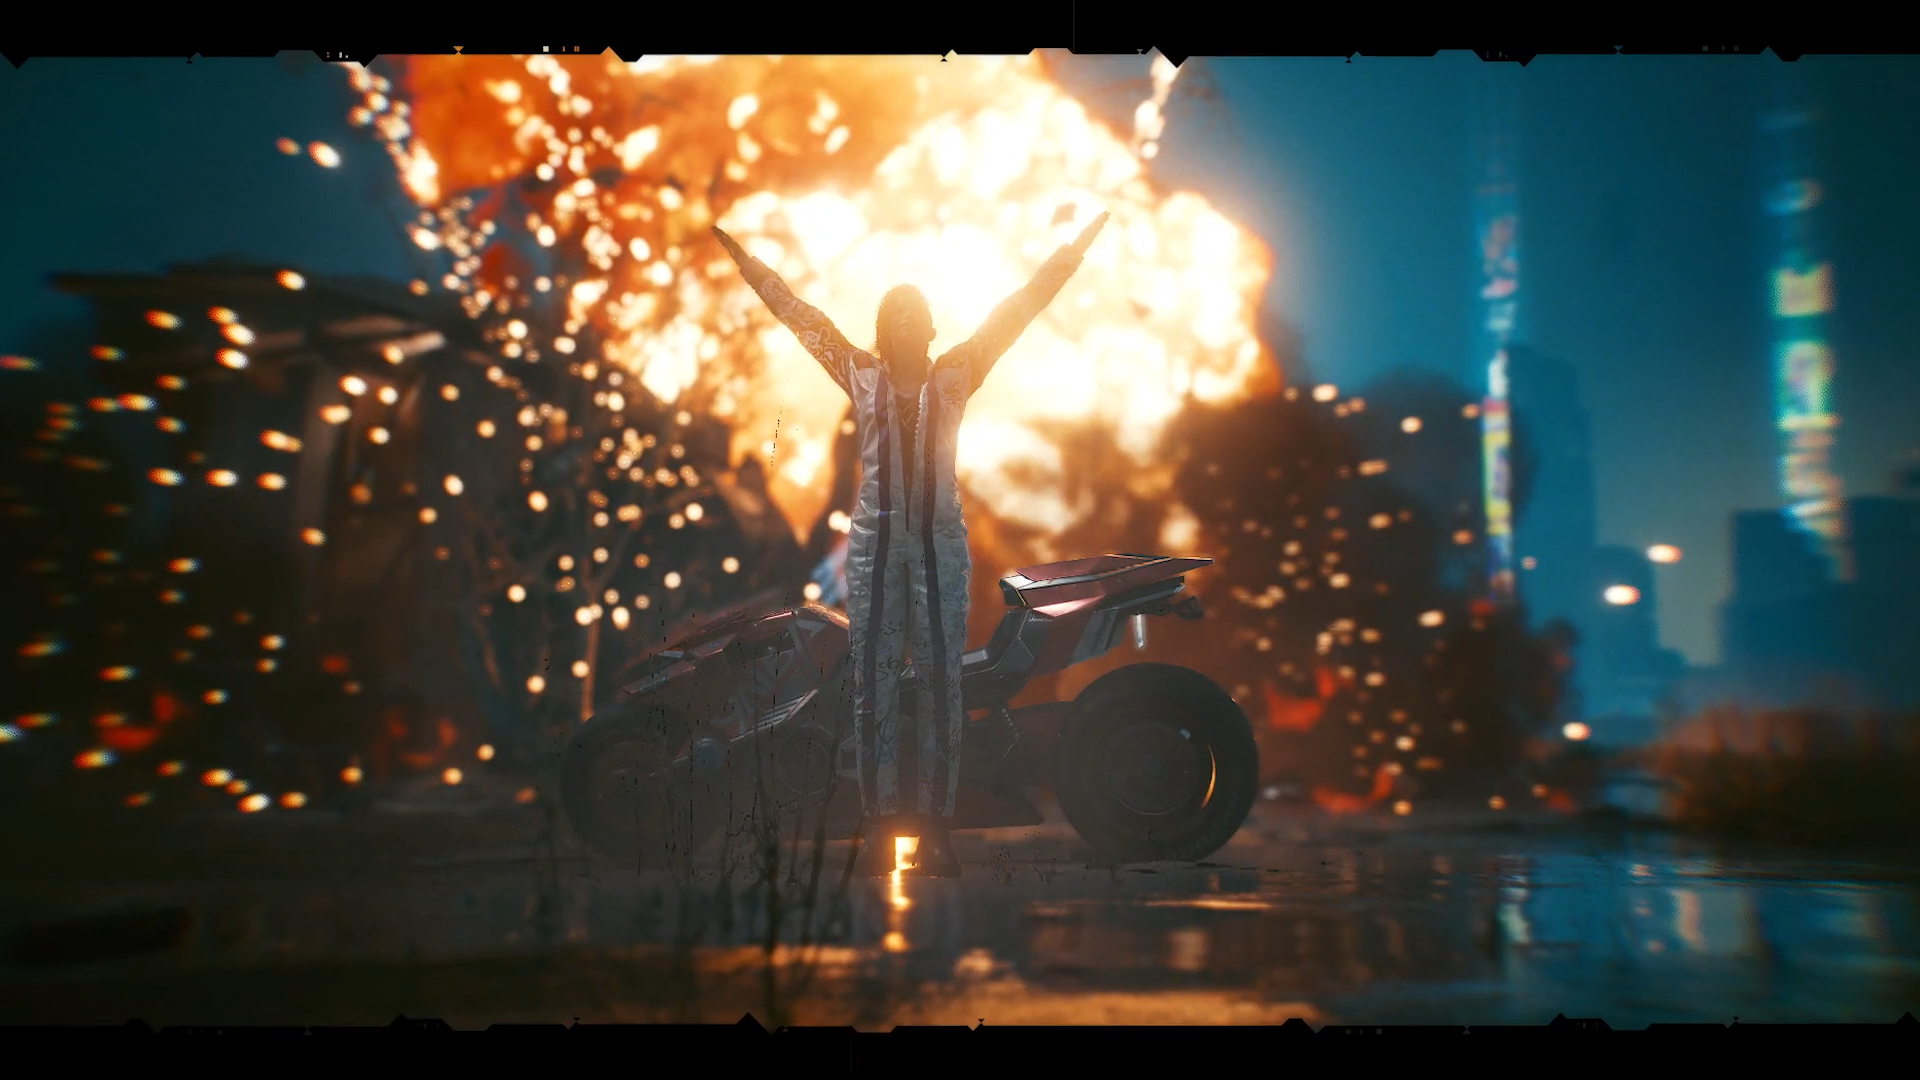 Cyberpunk 2077 custom character standing in front of an explosion